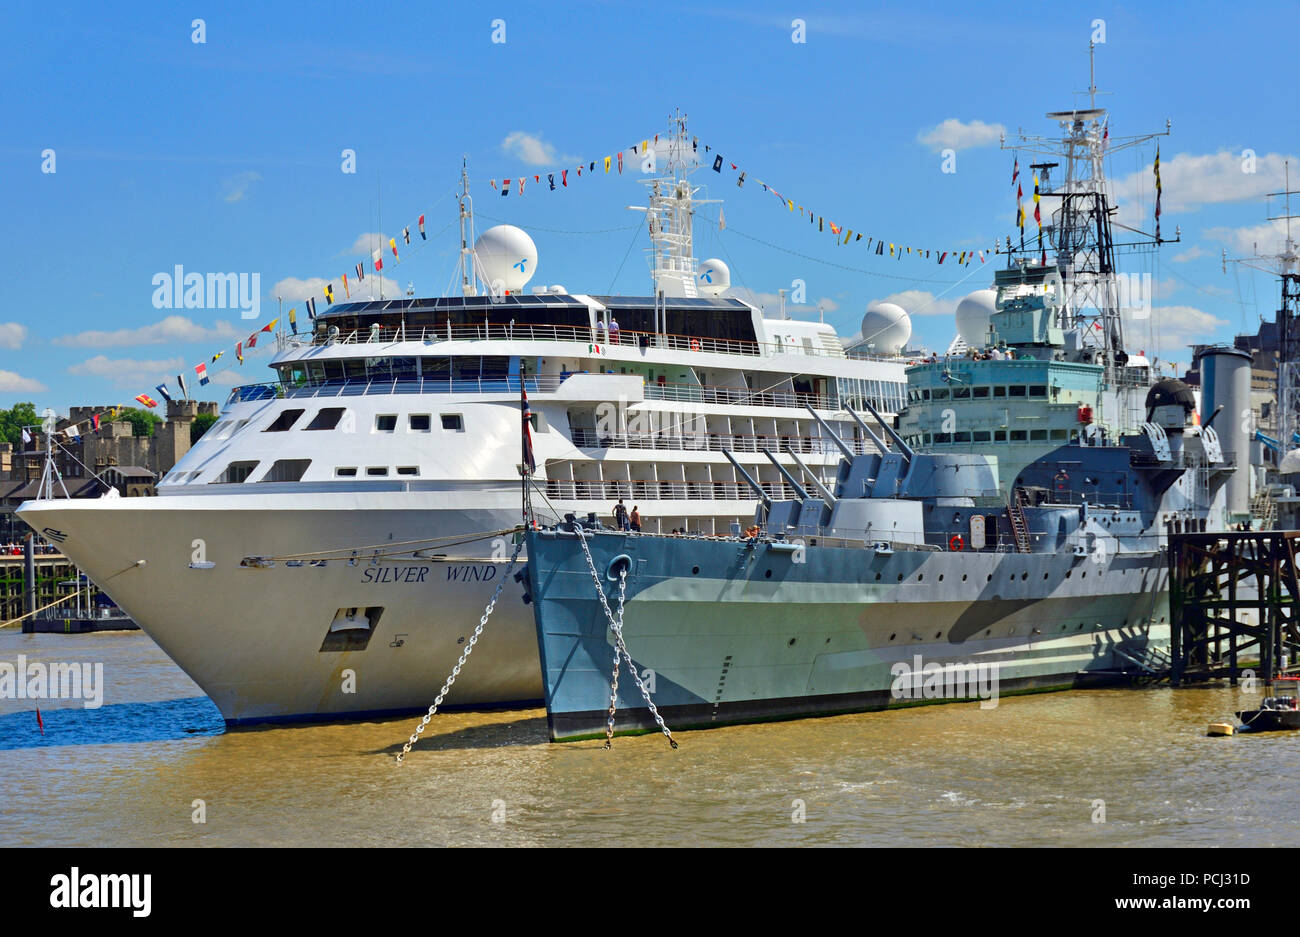 Silver Wind cruise ship moored next to HMS Belfast on the River Thames, London, England, UK. August 2018 Stock Photo